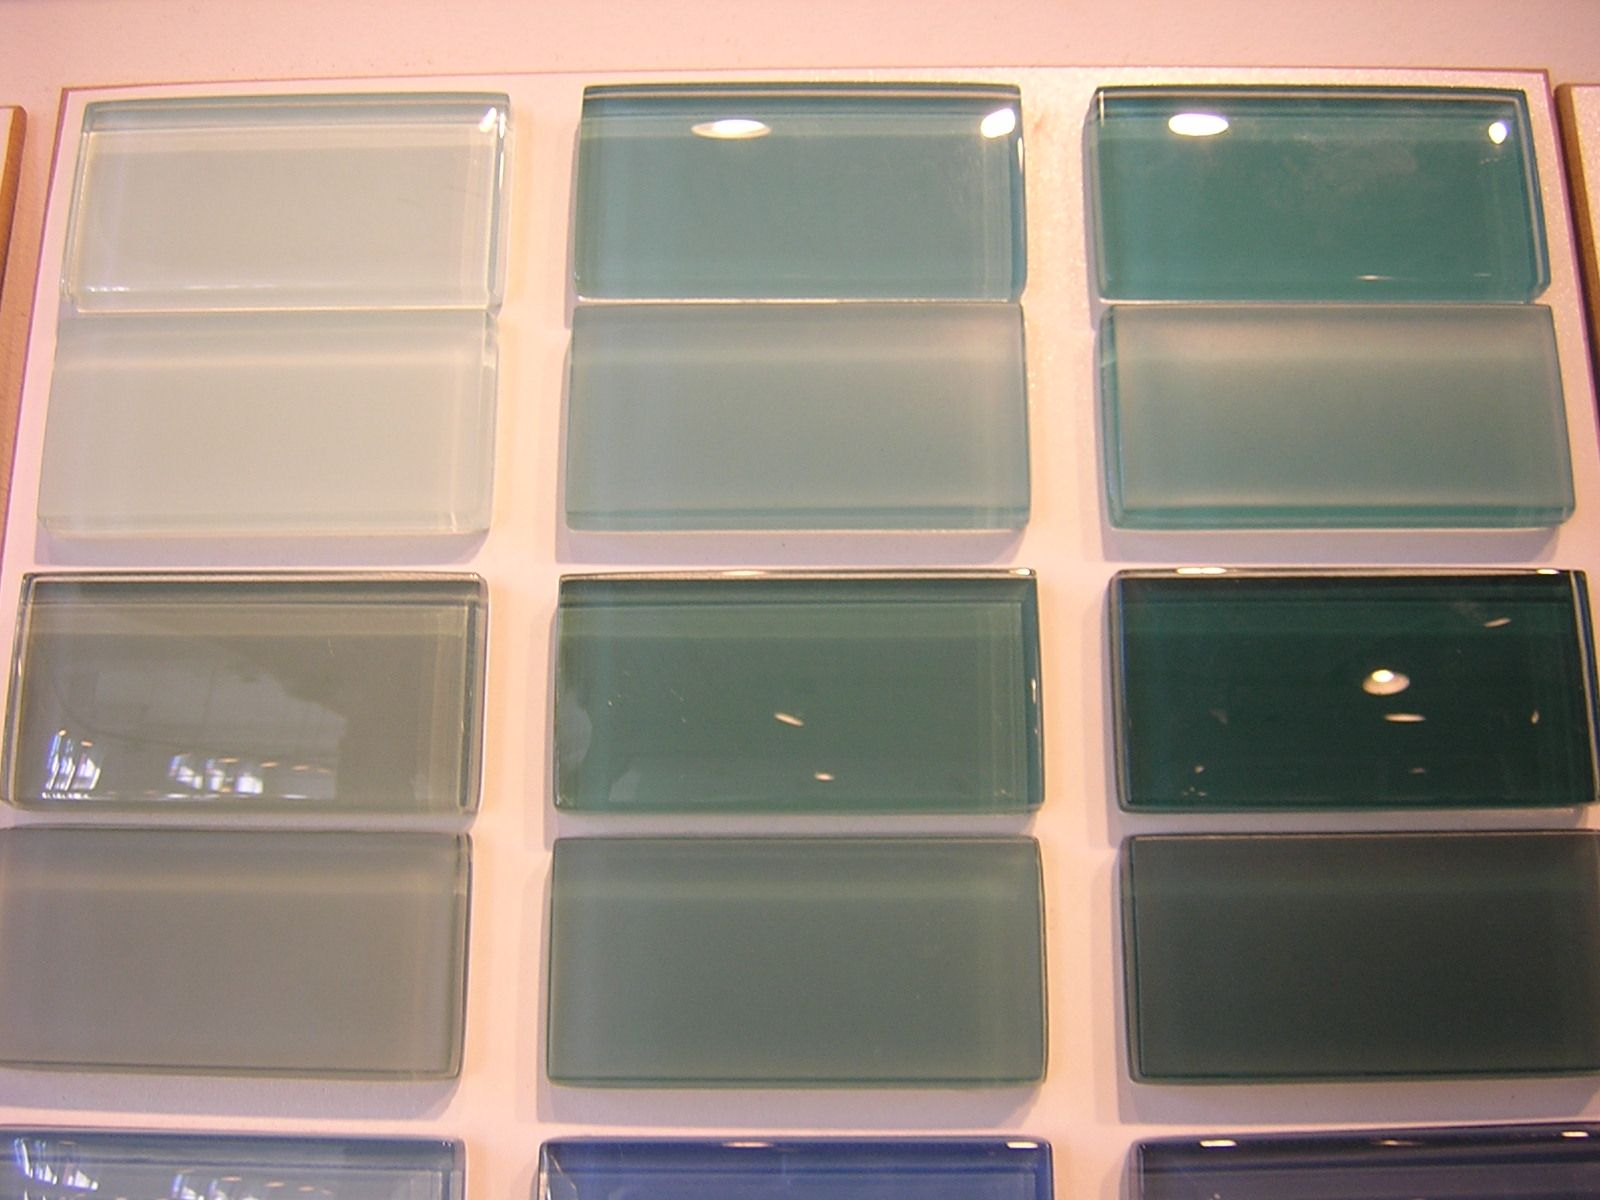 backsplash ideas | recycled glass tile backsplash | home decor ...